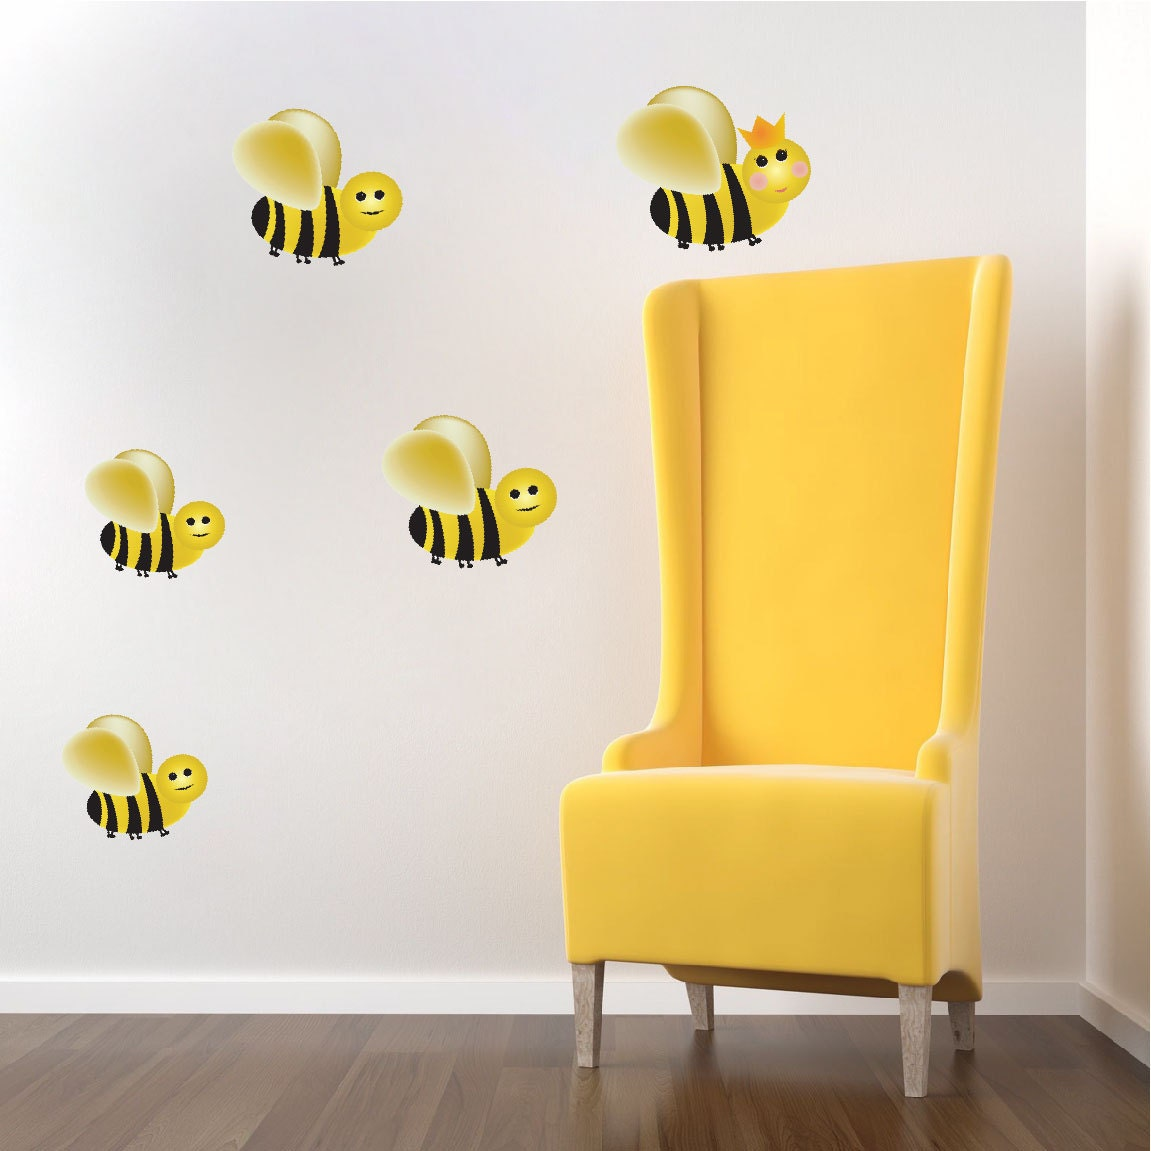 Bumble Bee Wall Decals Stickers Nursery Bee Bedroom Designs Queen ...